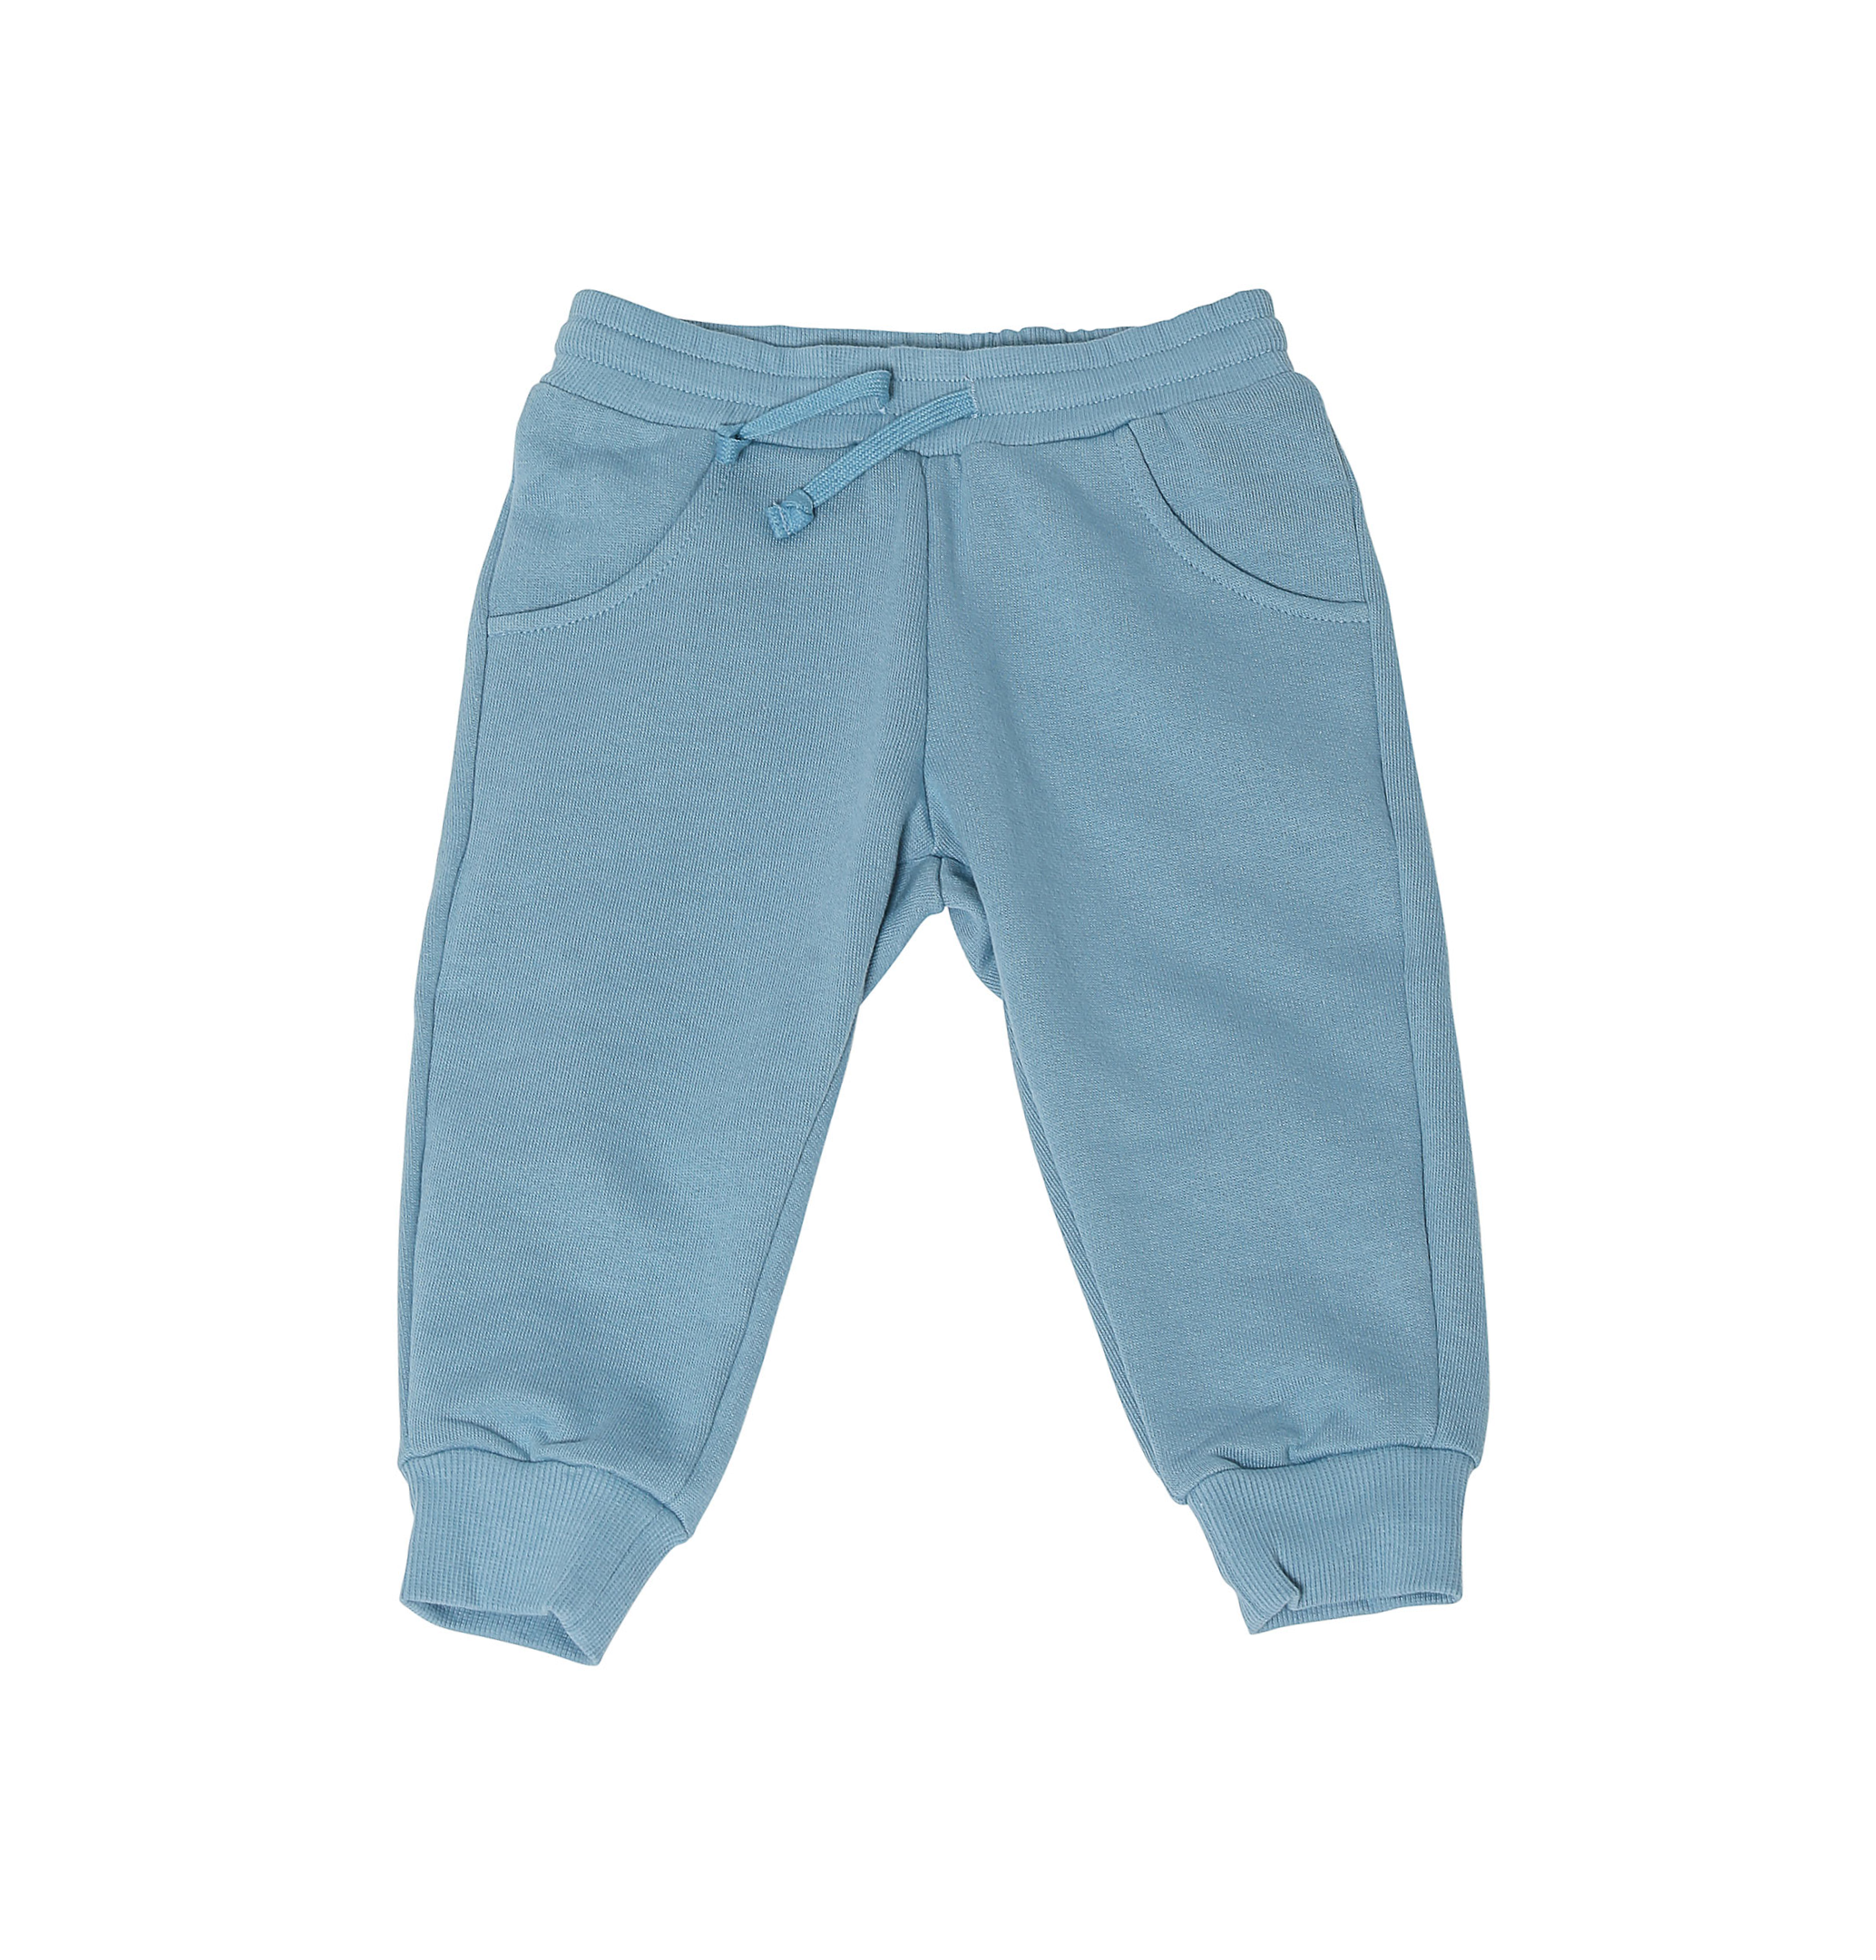 Mikijs Pants Organic Cotton Blue 2